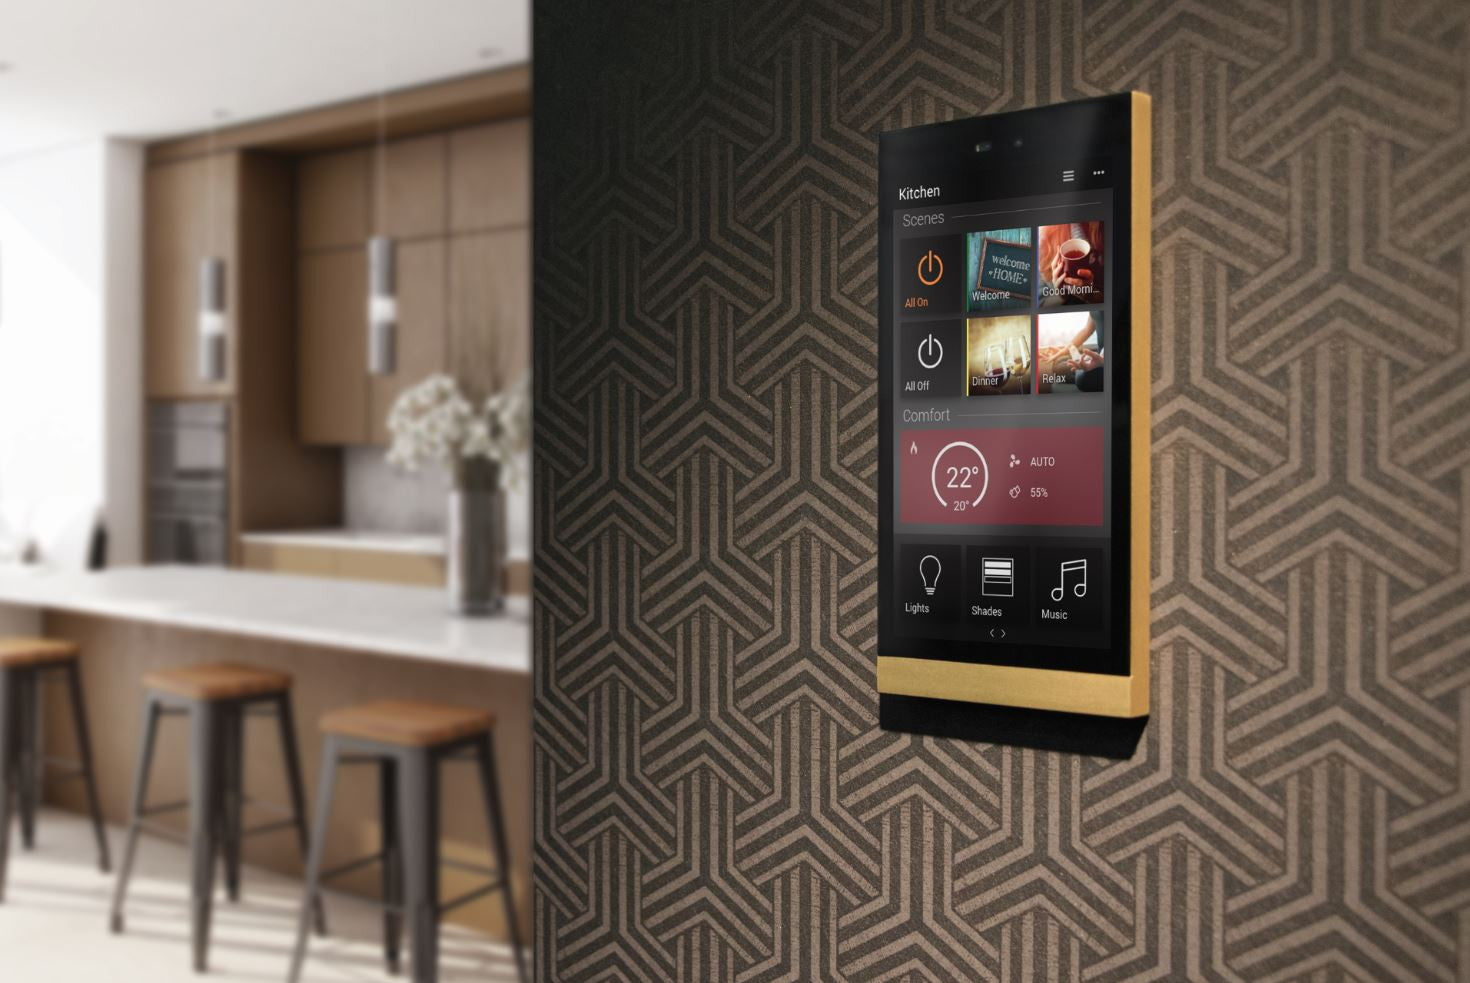 Baslate metal finish touch screen for smart home control